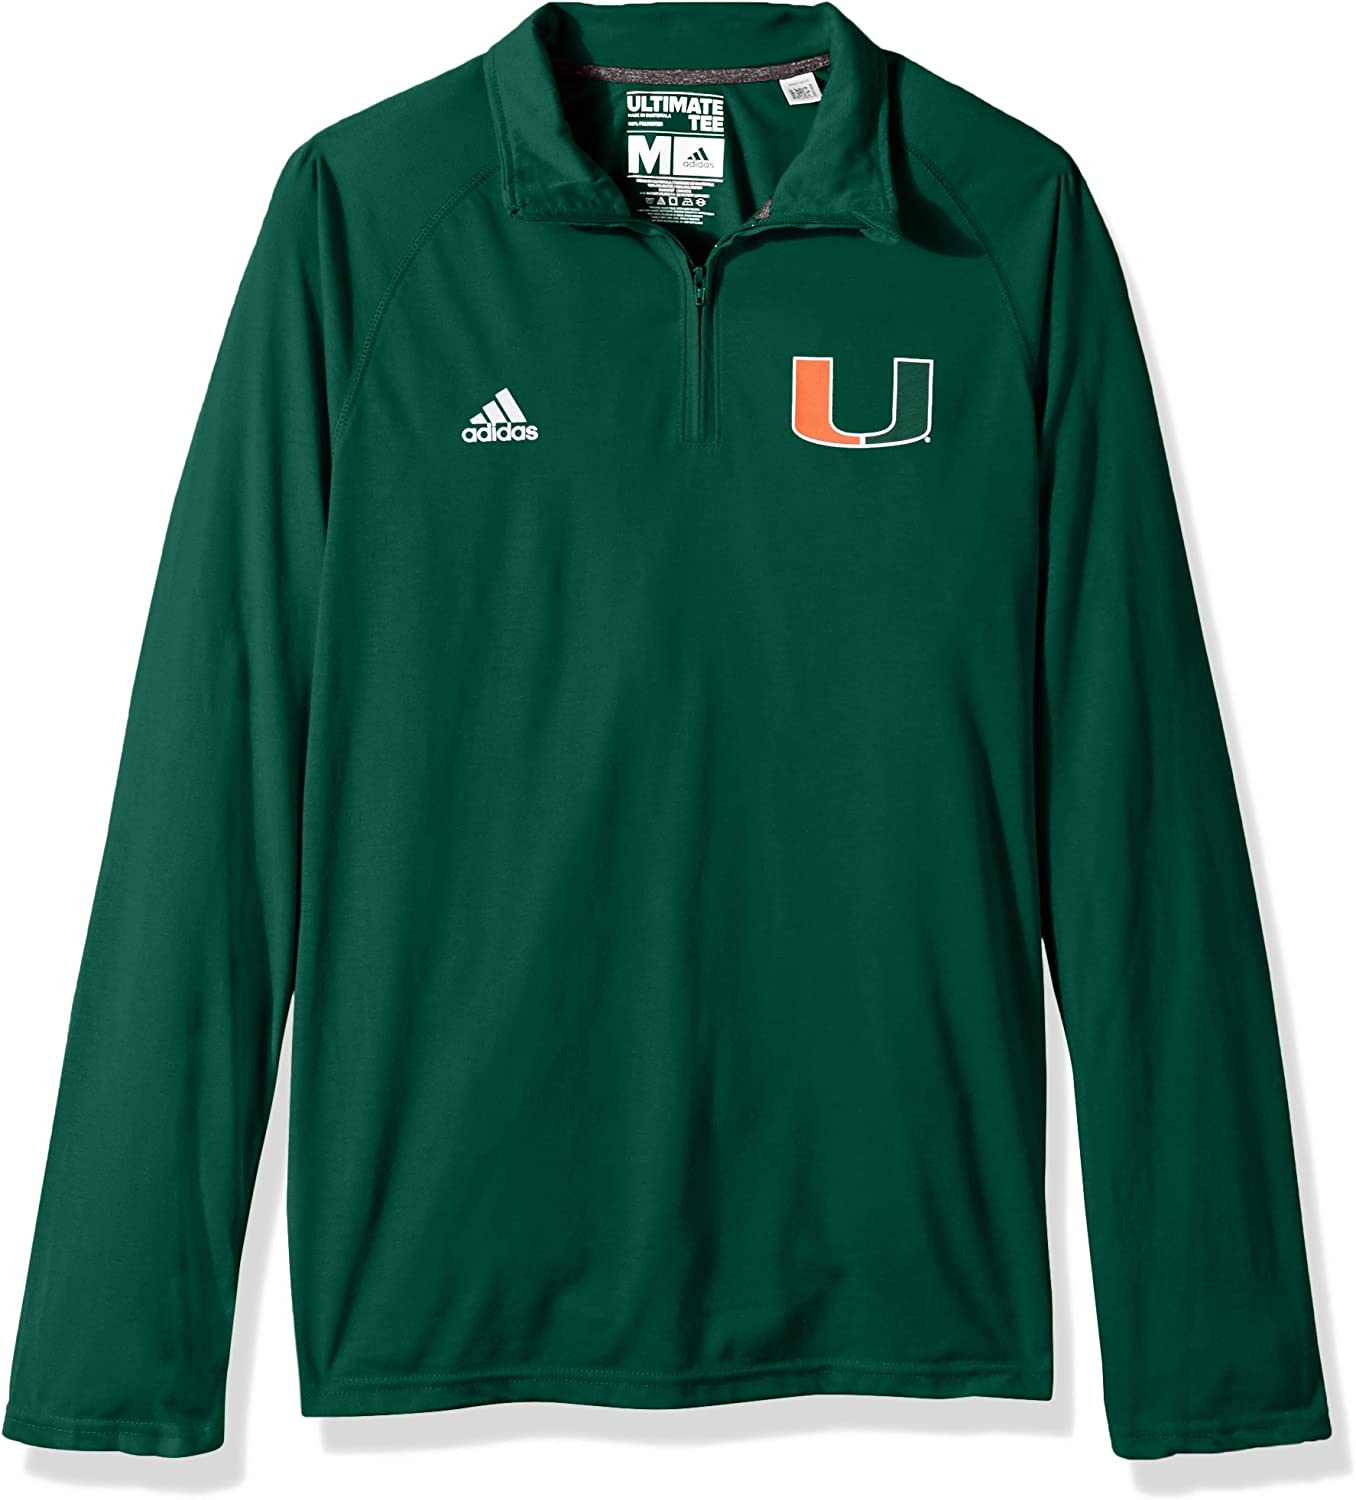 Adidas NCAA Men/'s Sideline L//S 1//4 Zip Pullover Jacket Team Options